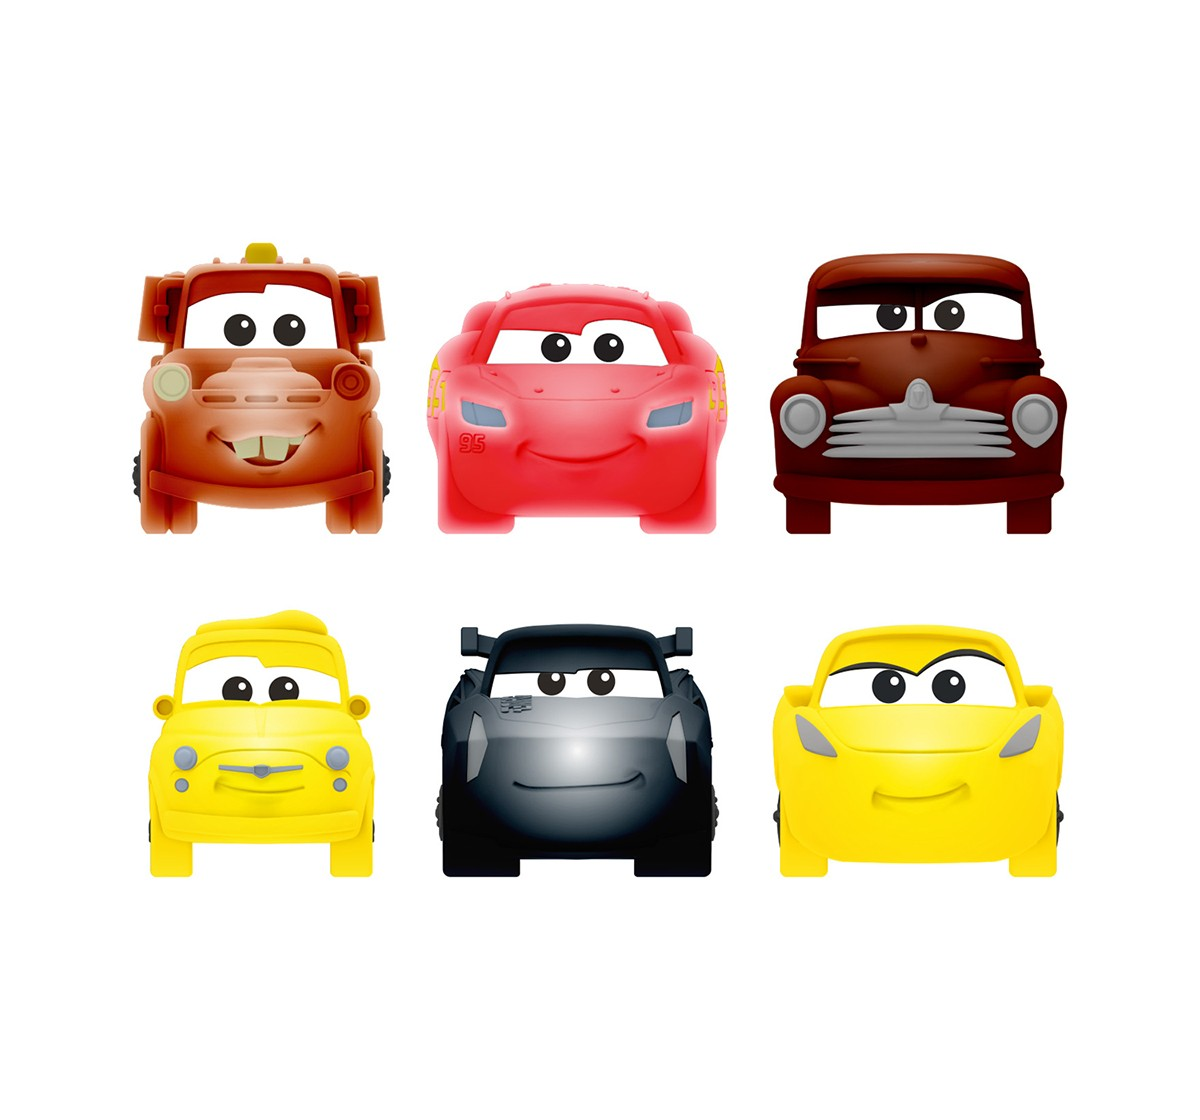 Mash'Ems Squishy Cars3 S2 Toy Figures for Kids age 4Y+